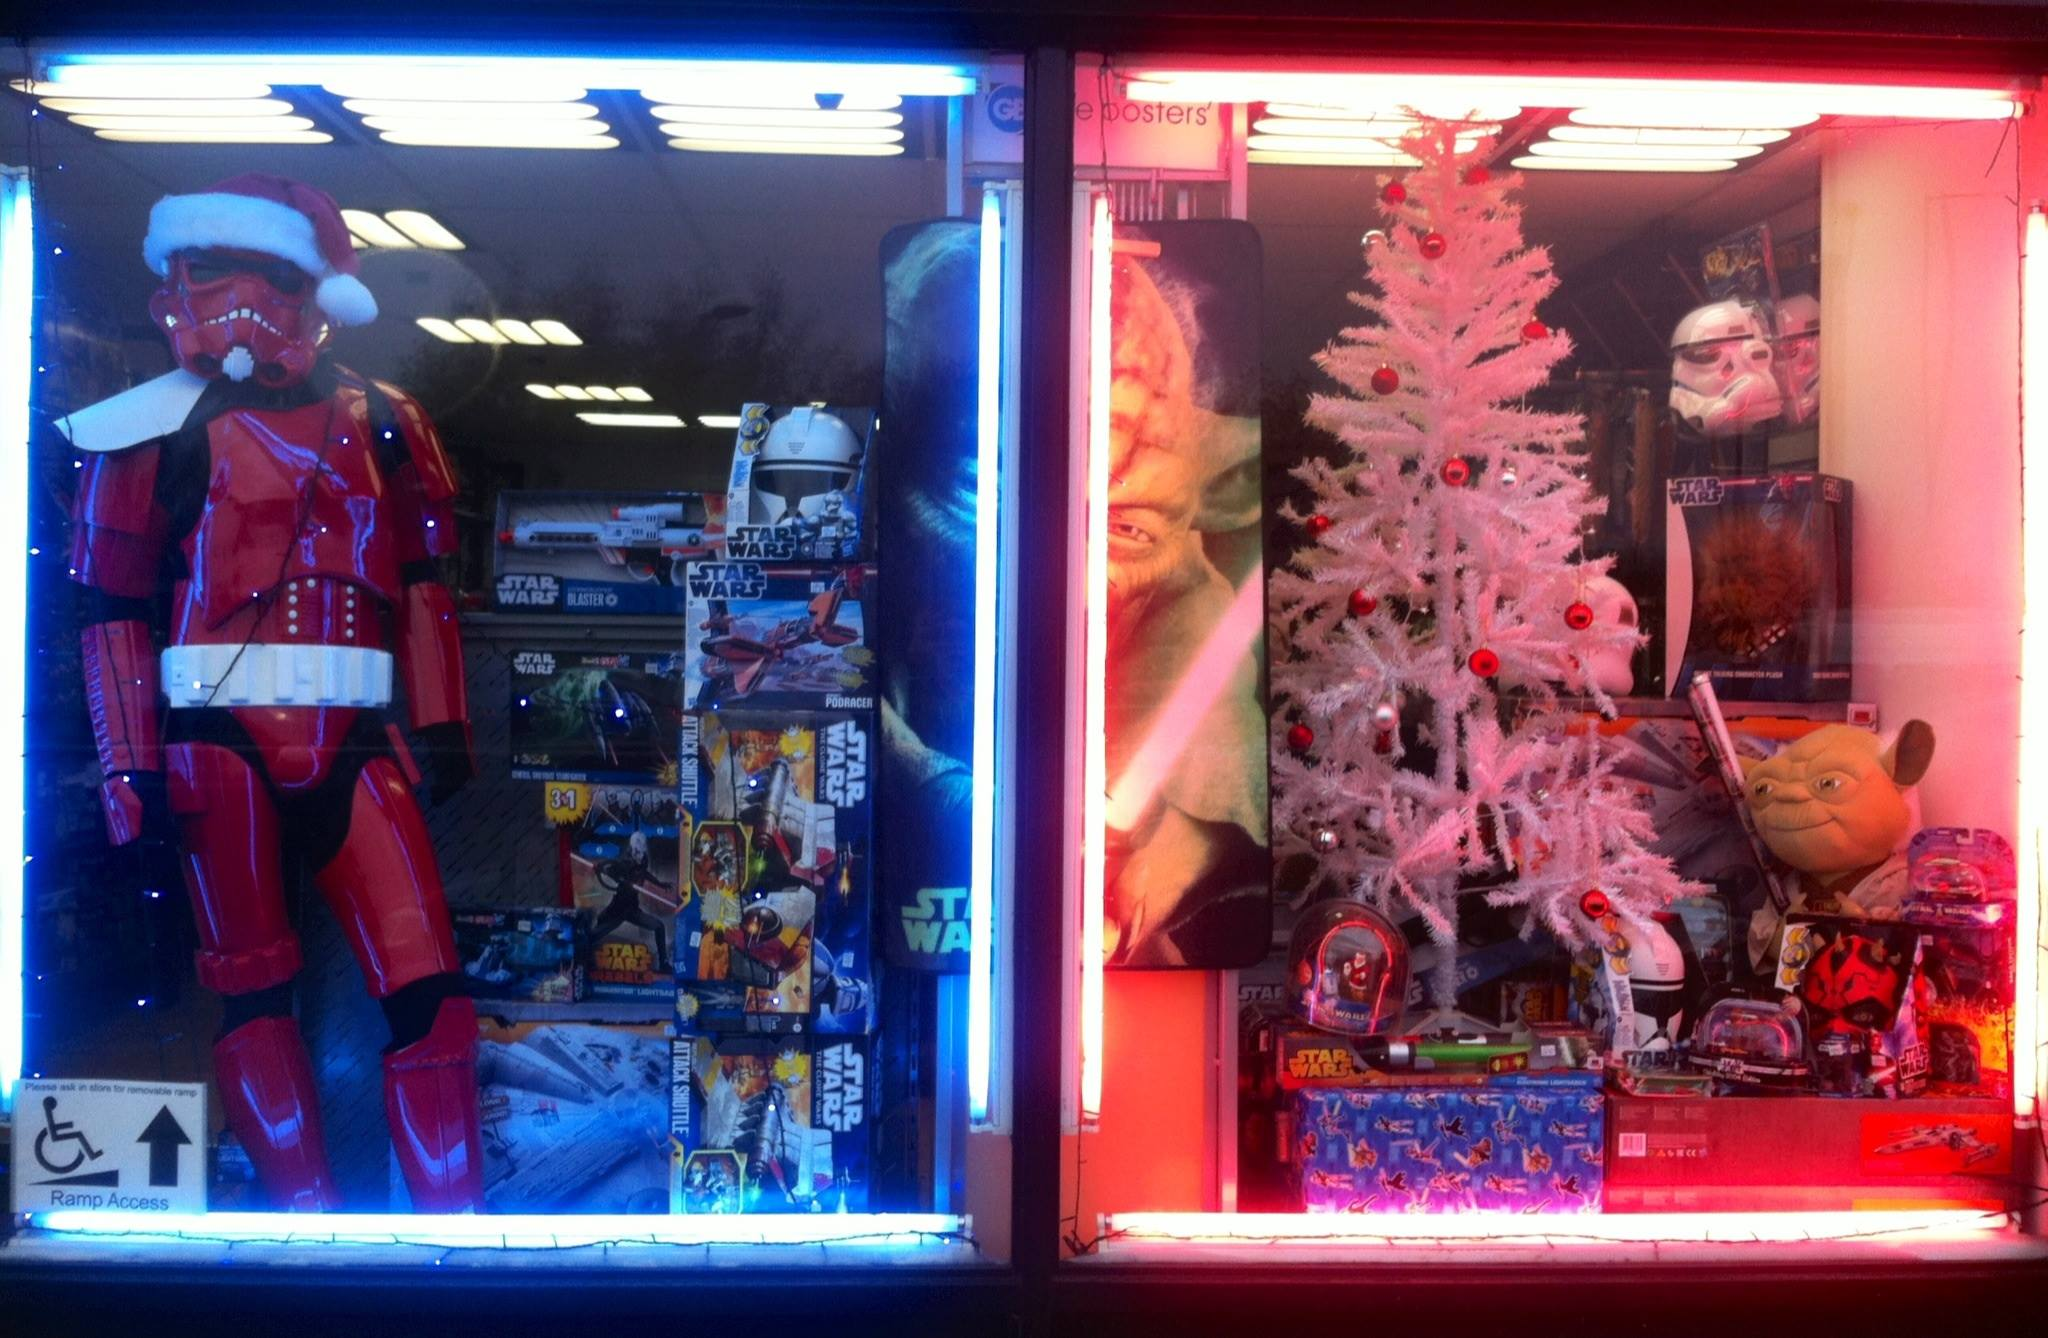 Star Wars Shop at Christmas